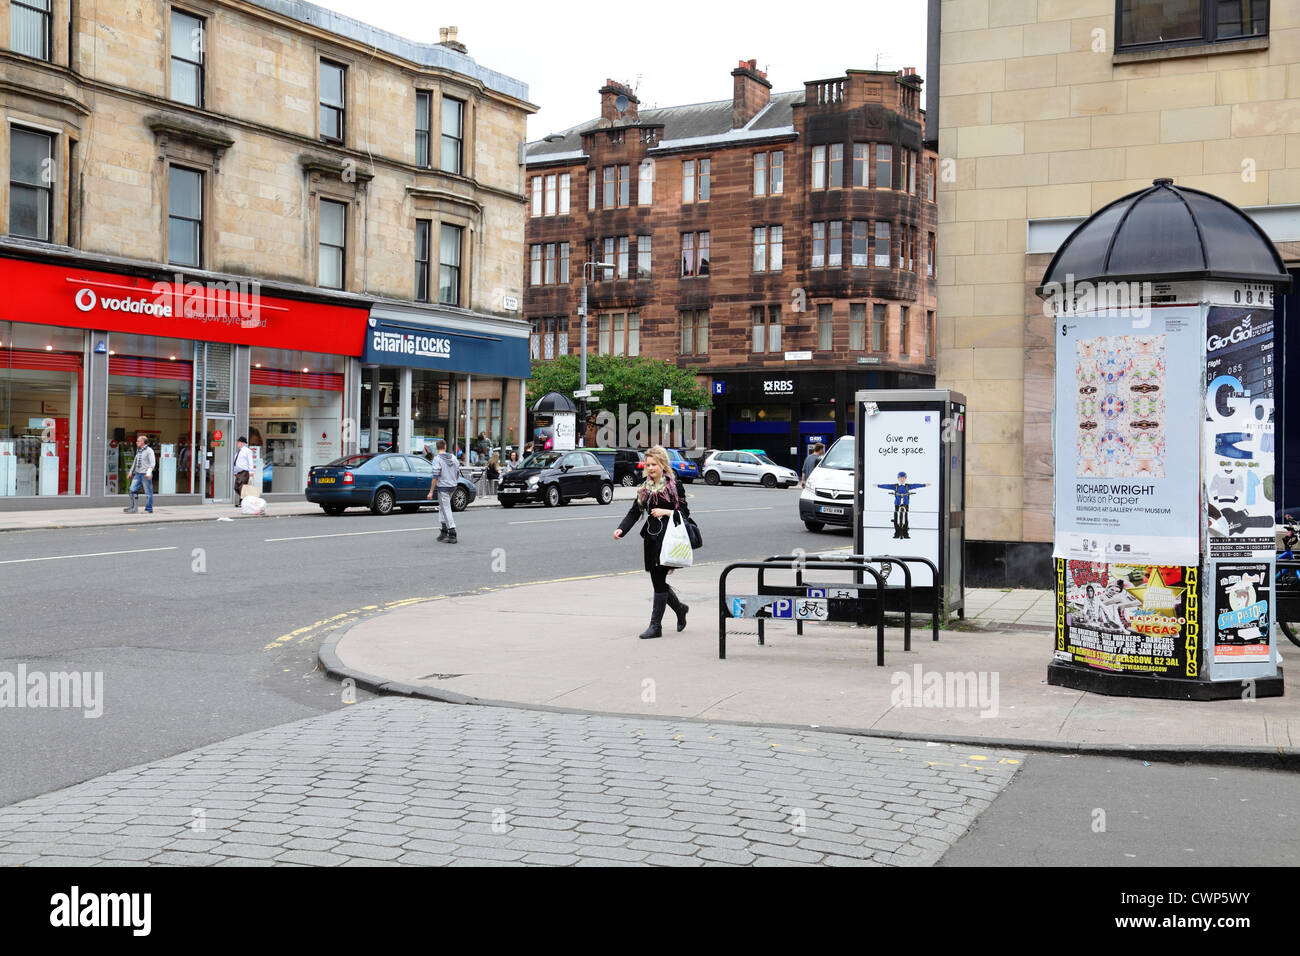 Byres Road dans le West End de Glasgow, Écosse, Royaume-Uni Photo Stock